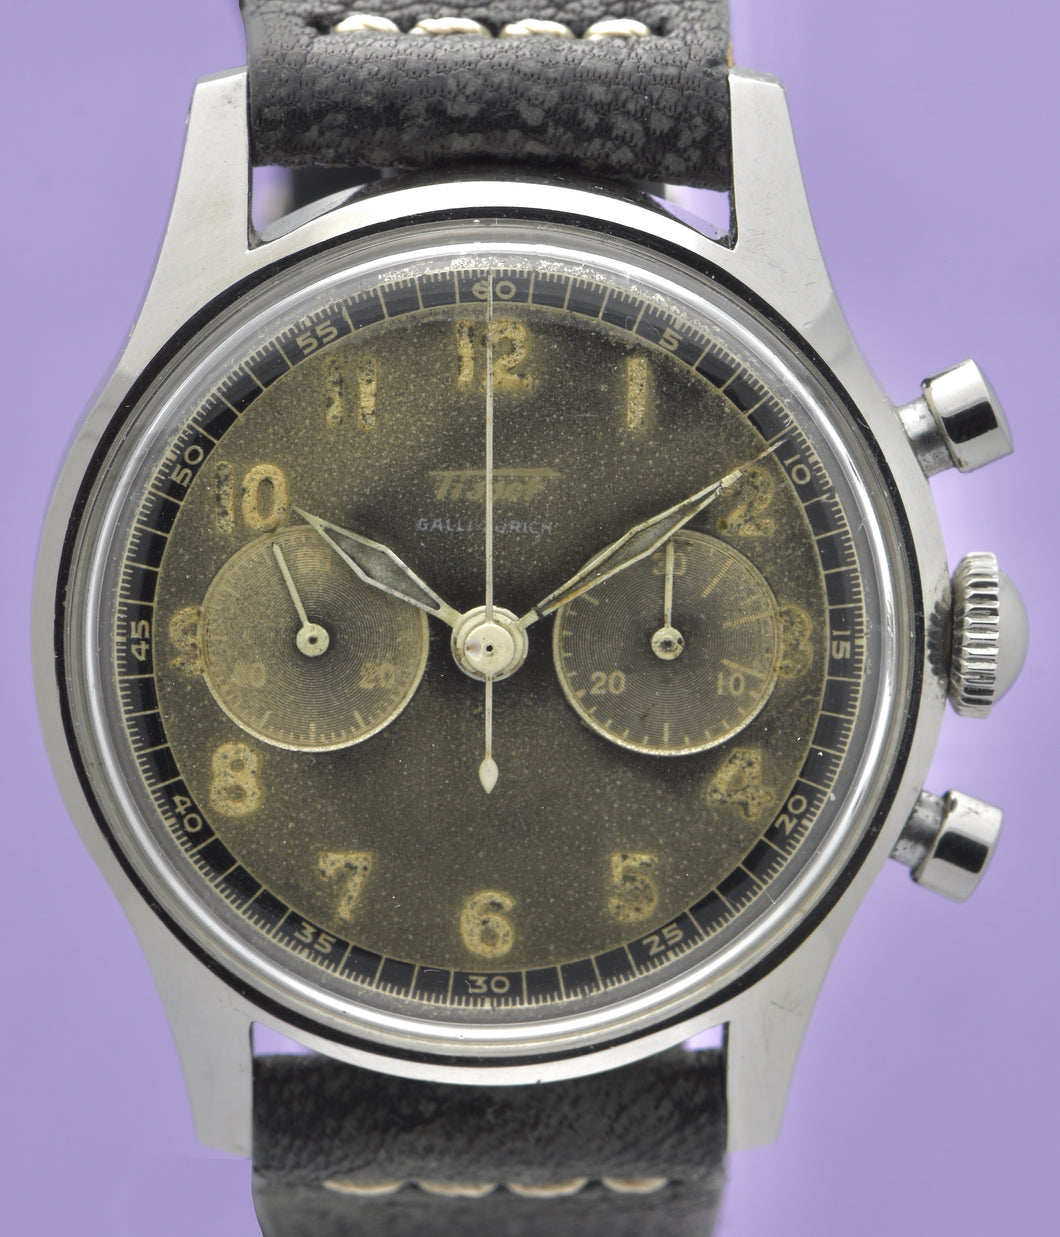 Tissot, Ref. No. 6216-3. Made in the 1950s and sold by Galli Uhren in Zürich, Switzerland.  Fine, water resistant, stainless radium dial steel wristwatch with round button chronograph, registers.